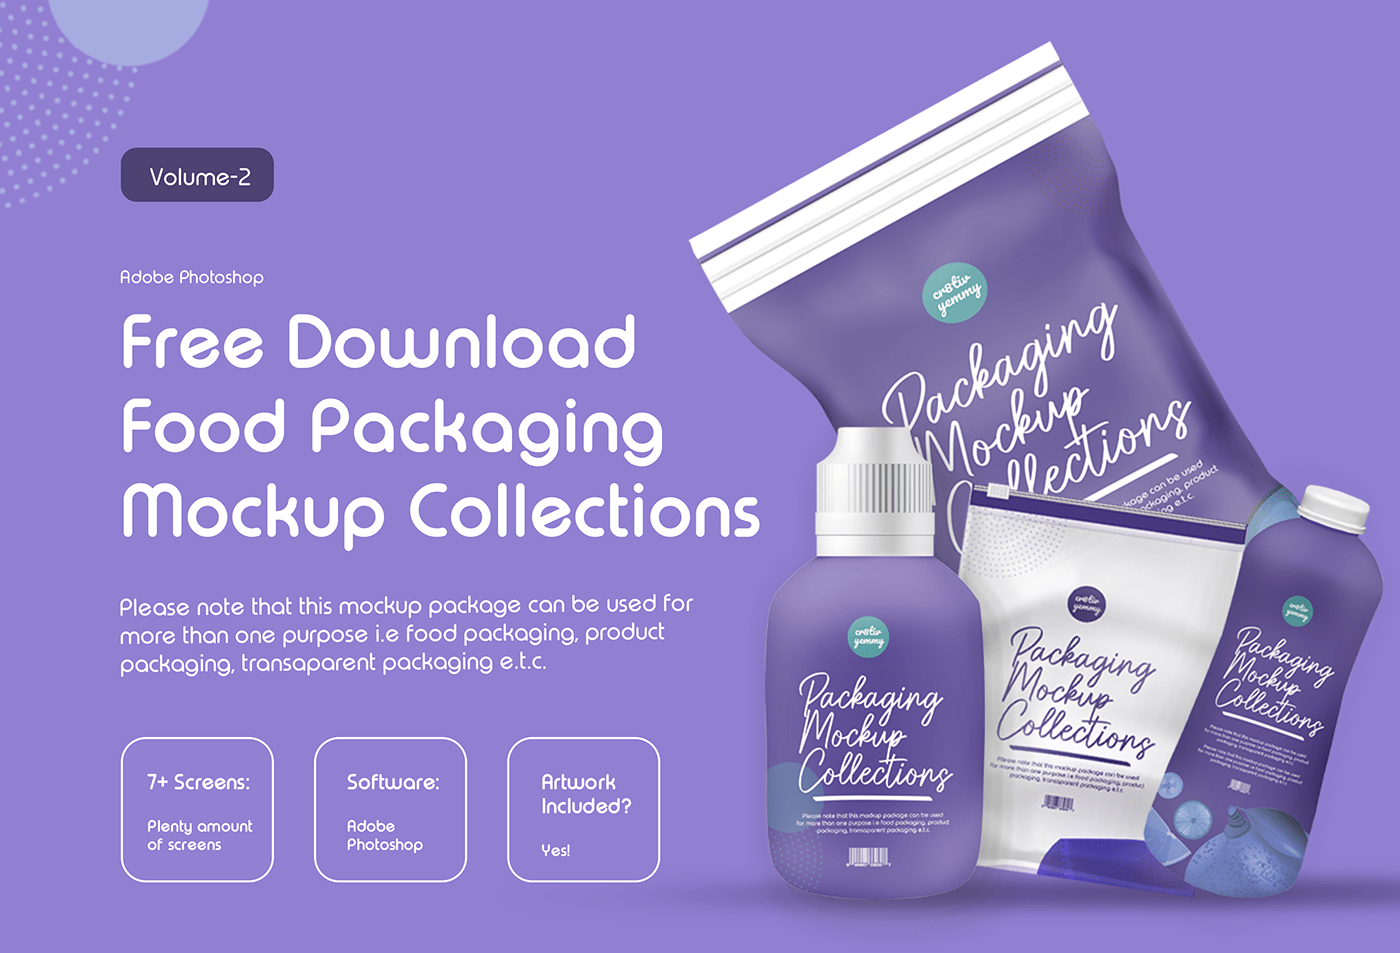 Food Packaging Mockup Collections Free Download - Volume 2